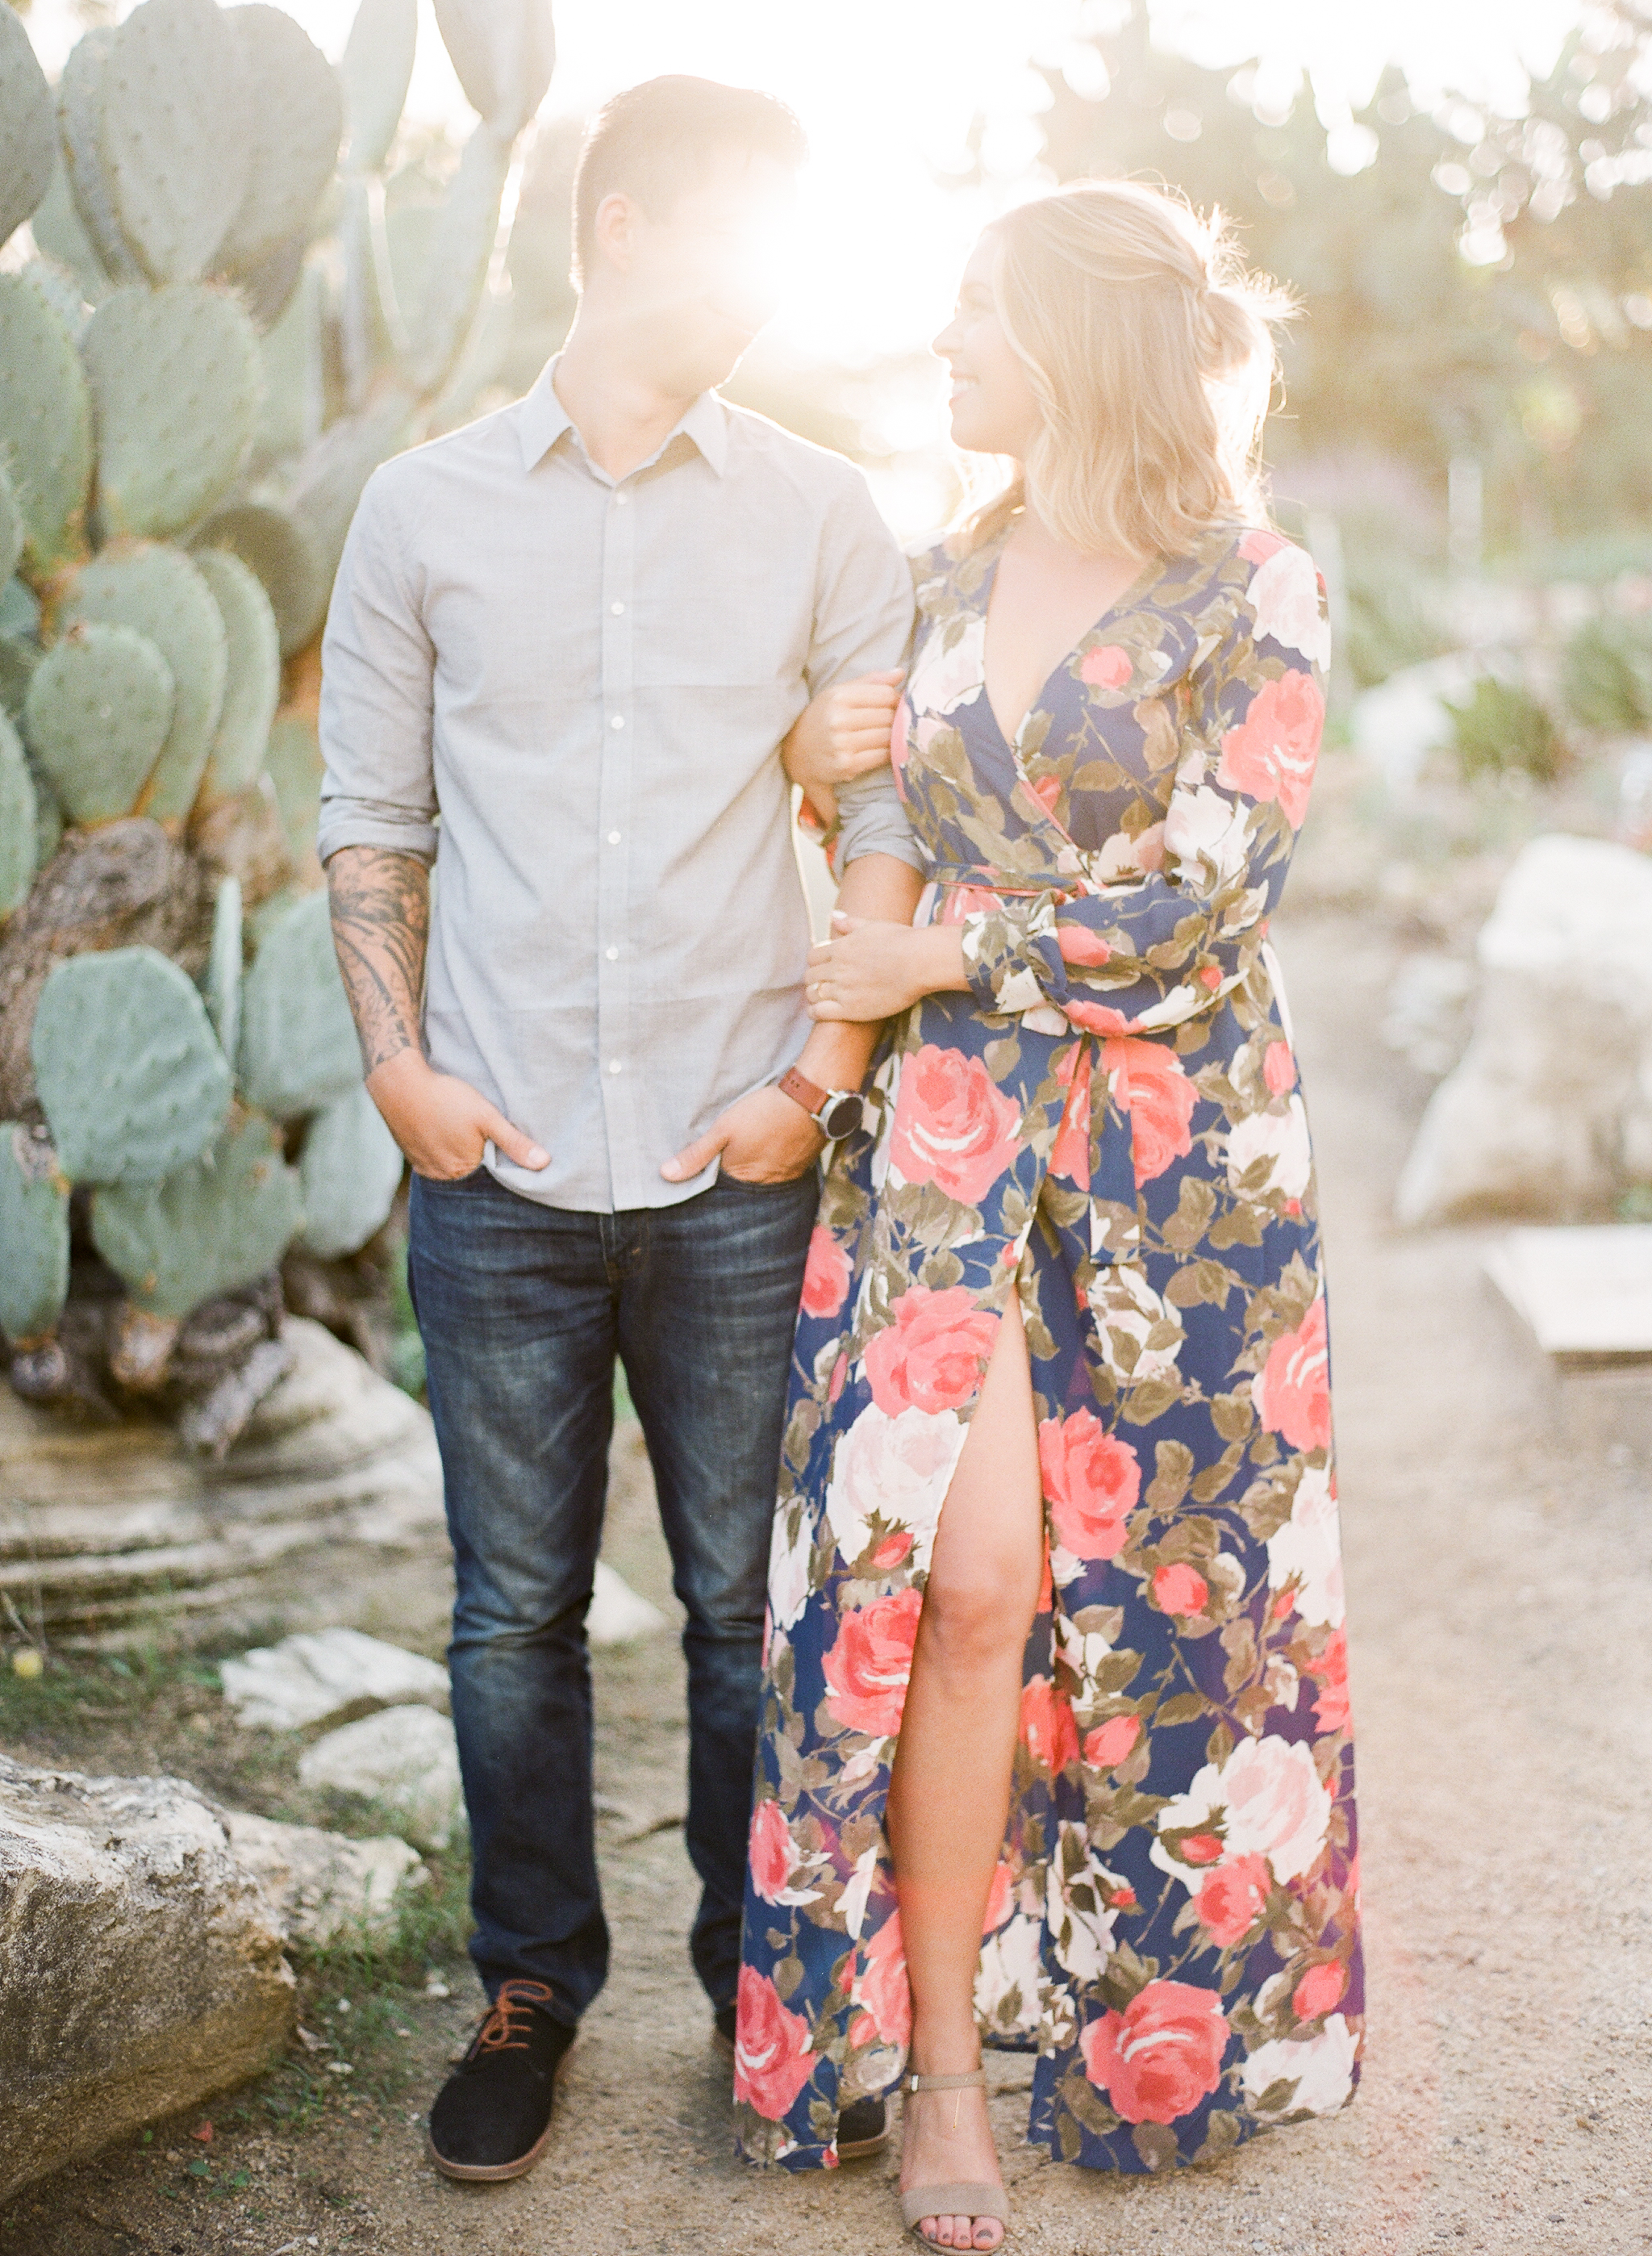 engagement shoot in cactus garden